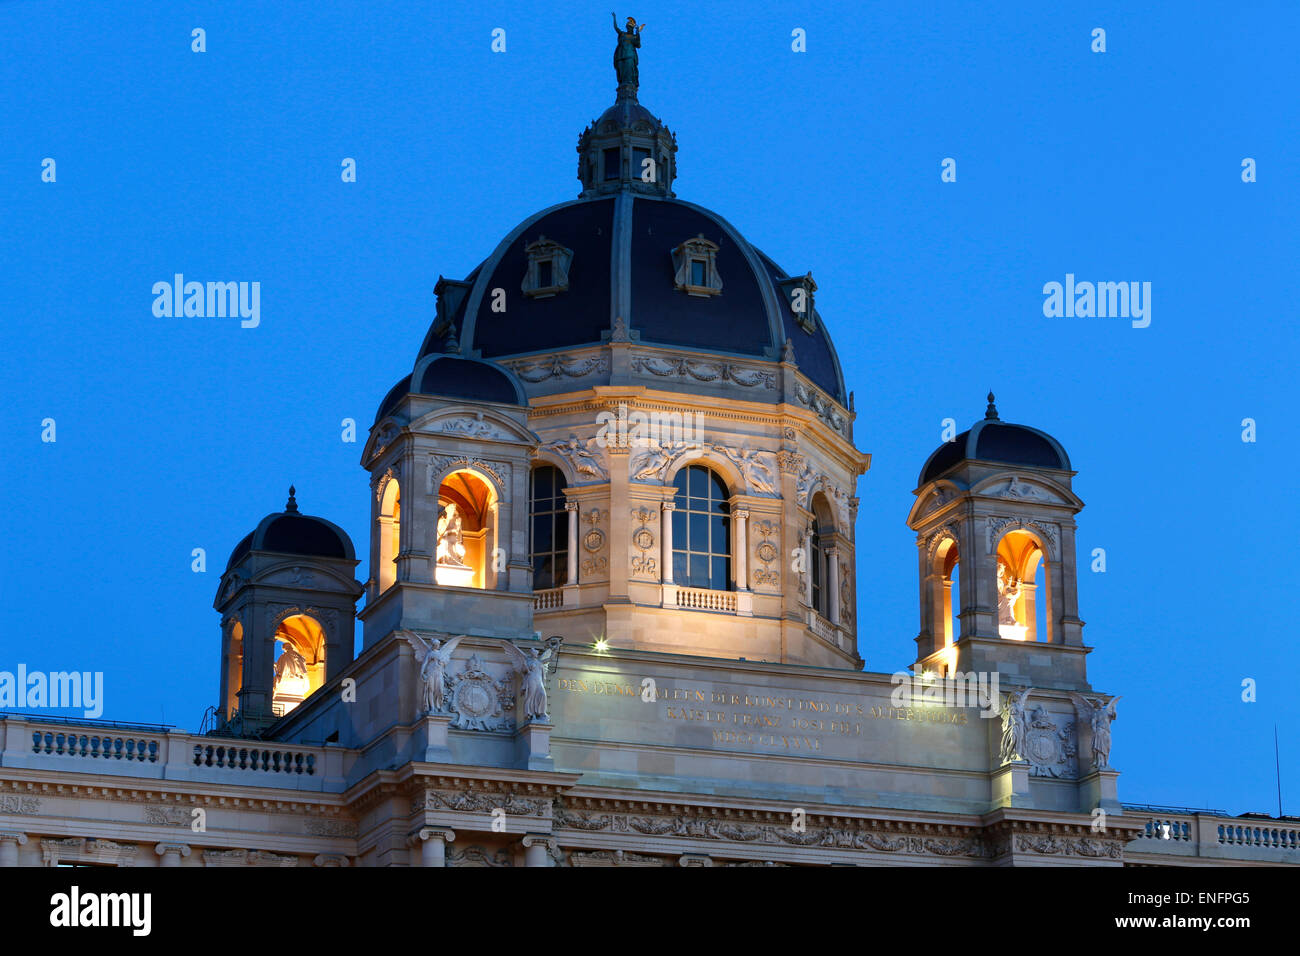 Dome of the Museum of Art History or Kunsthistorisches Museum, Vienna, Austria Stock Photo